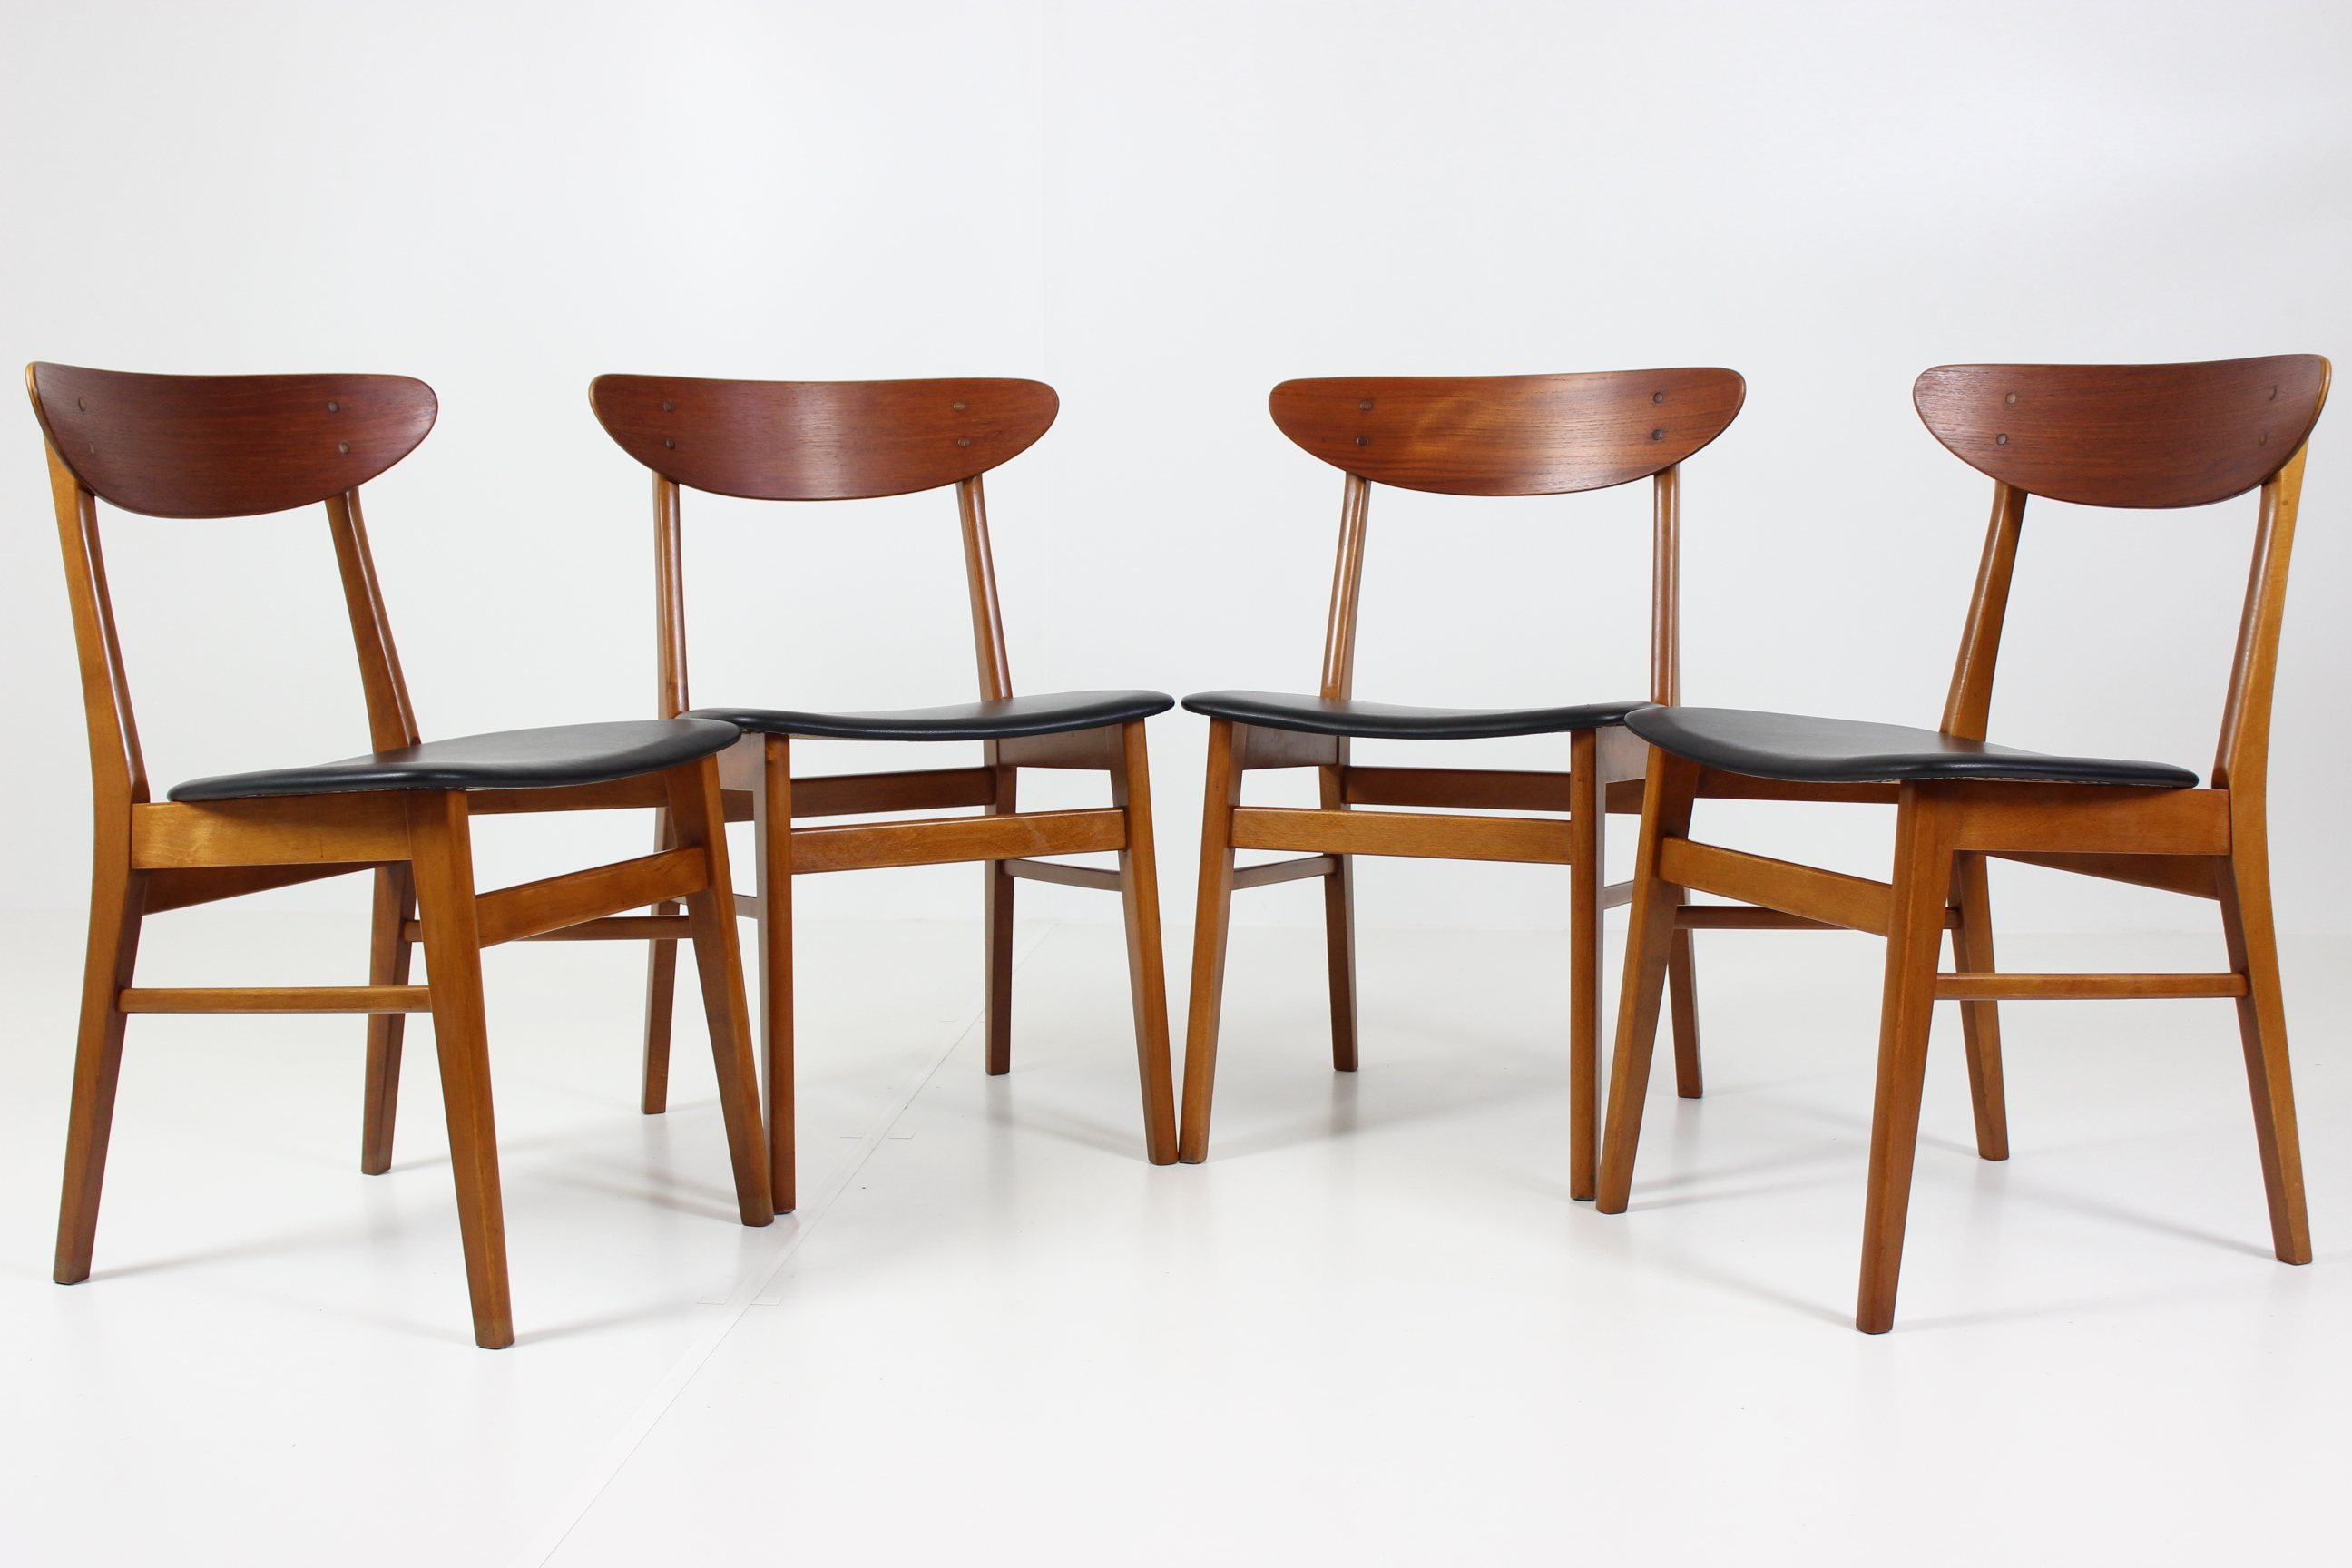 Modernism Dining Chairs In Teak From Farstrup Savvaerk